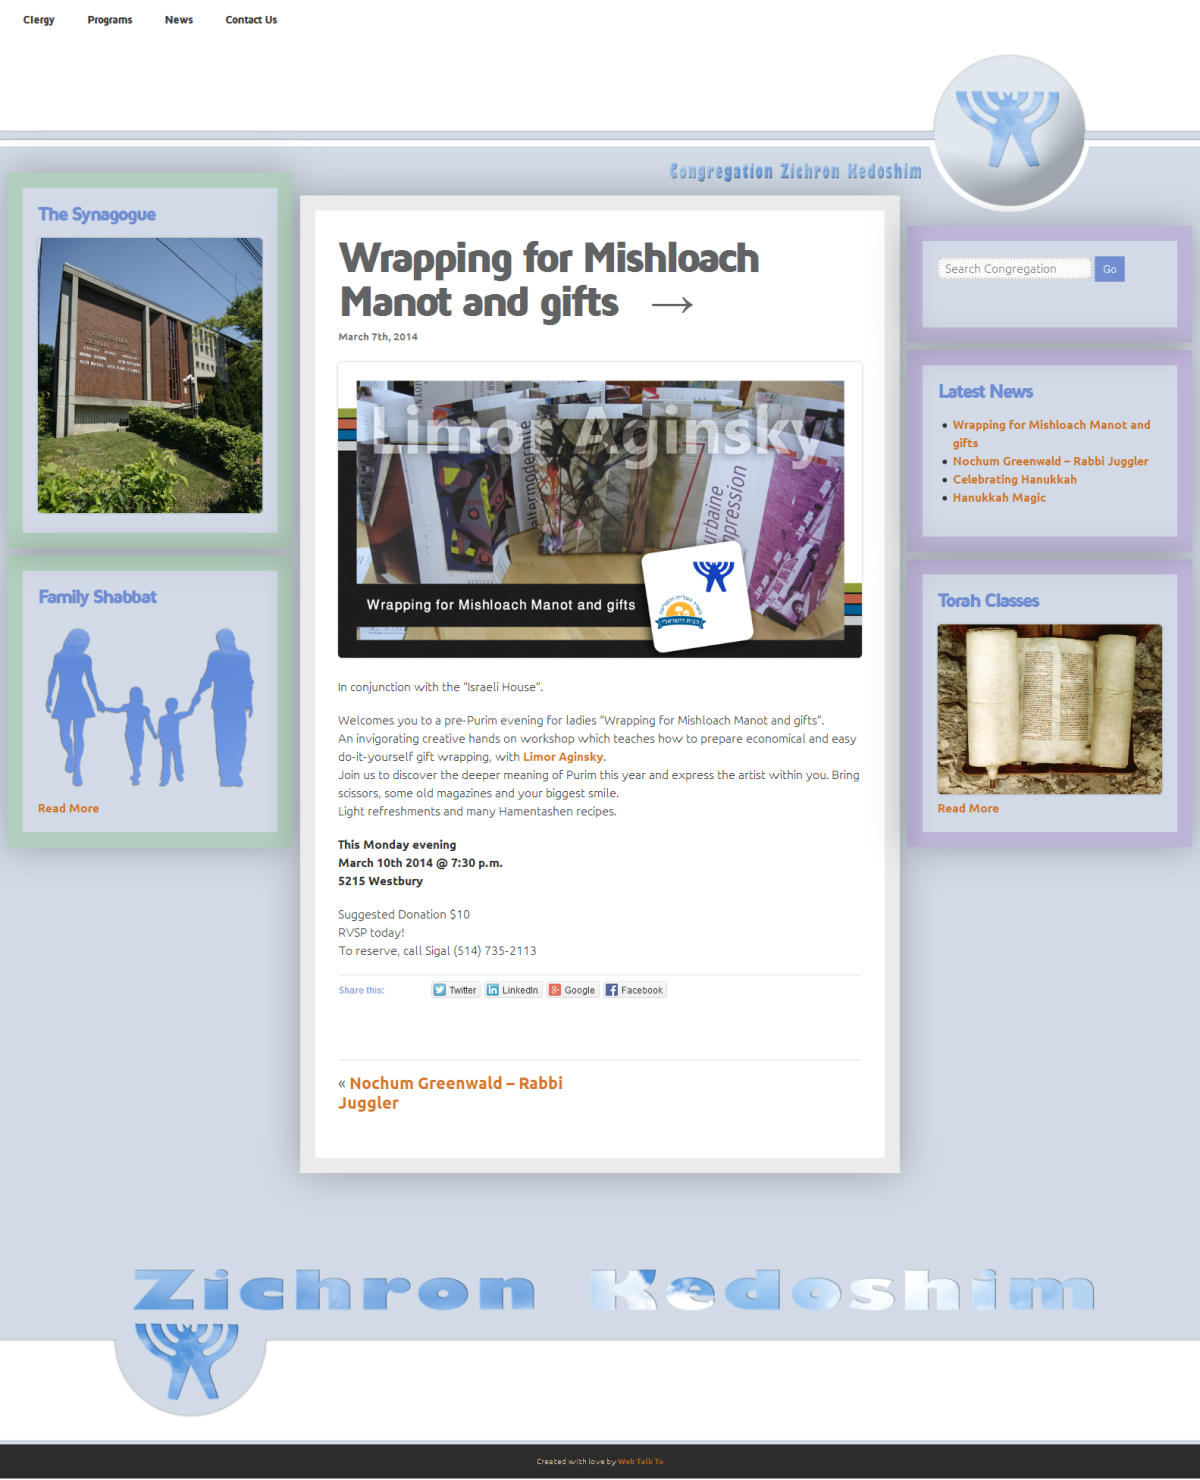 3 Zichron Kedoshim website version 2.2